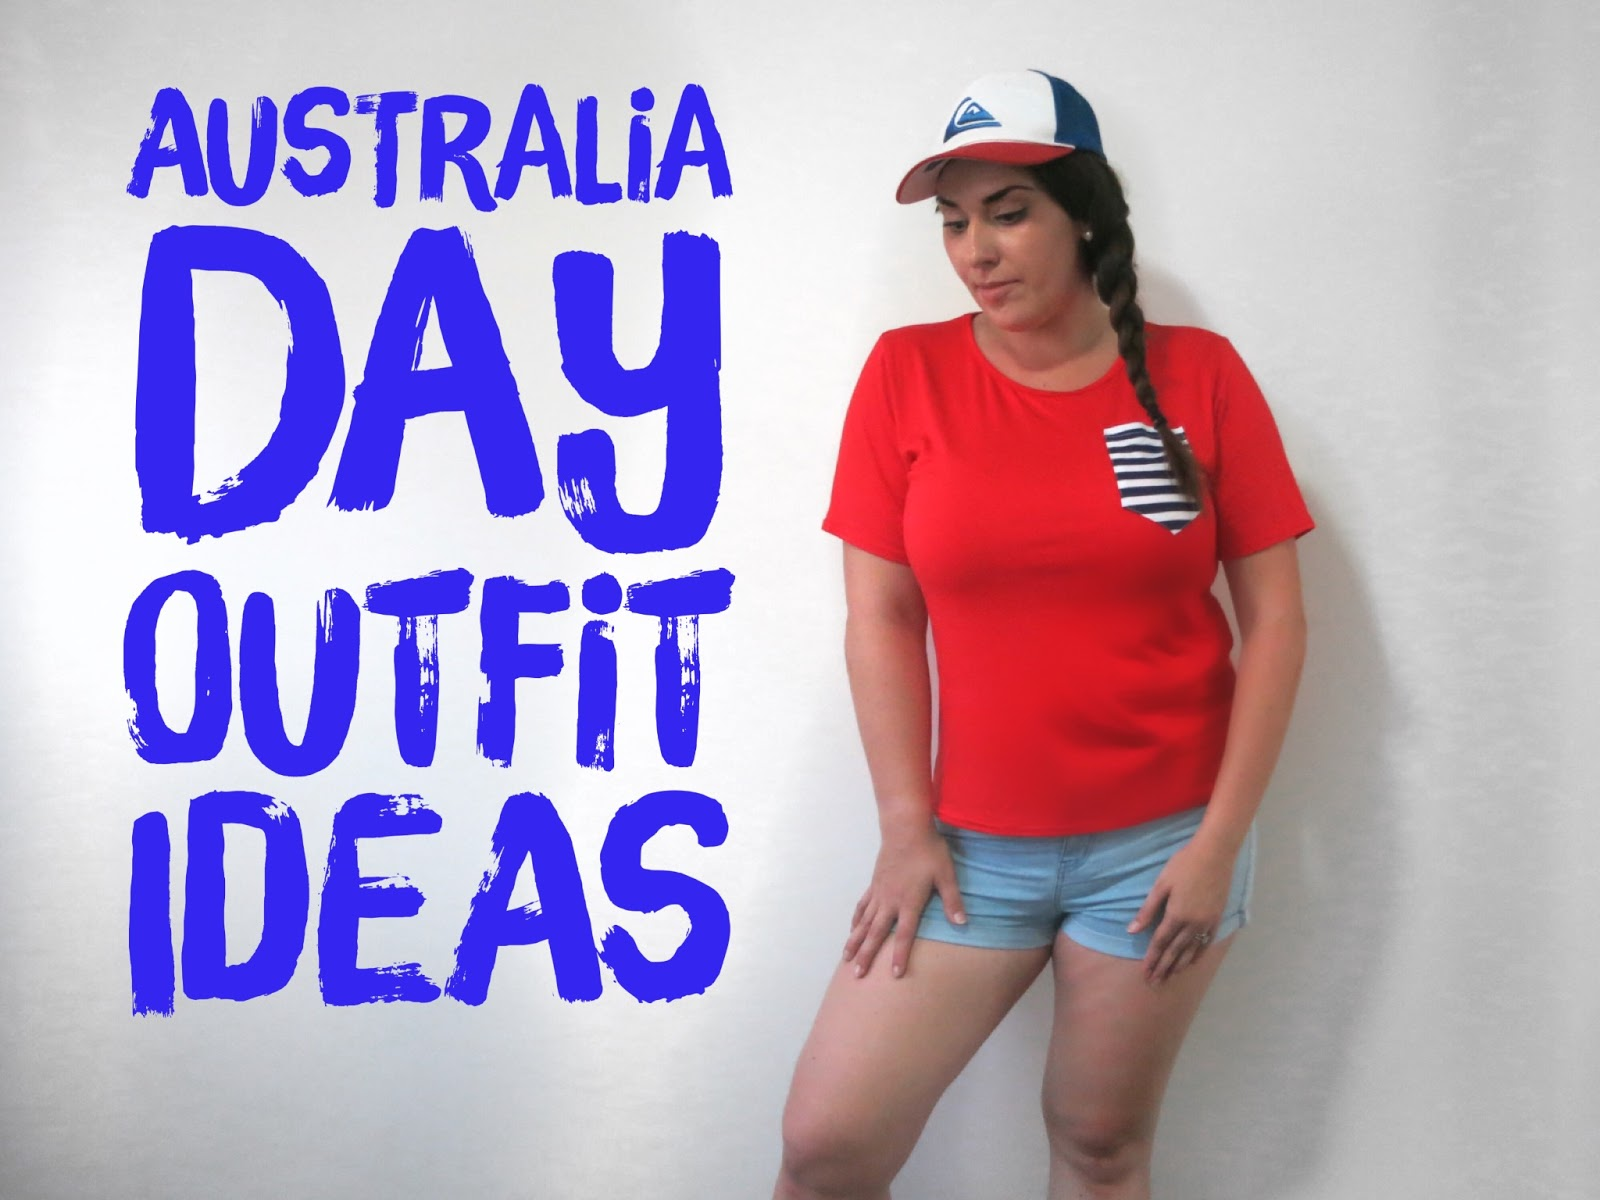 Australia Day Outfit Ideas  sc 1 st  Bows and Pleats & Bows and Pleats: Australia Day Outfit Ideas